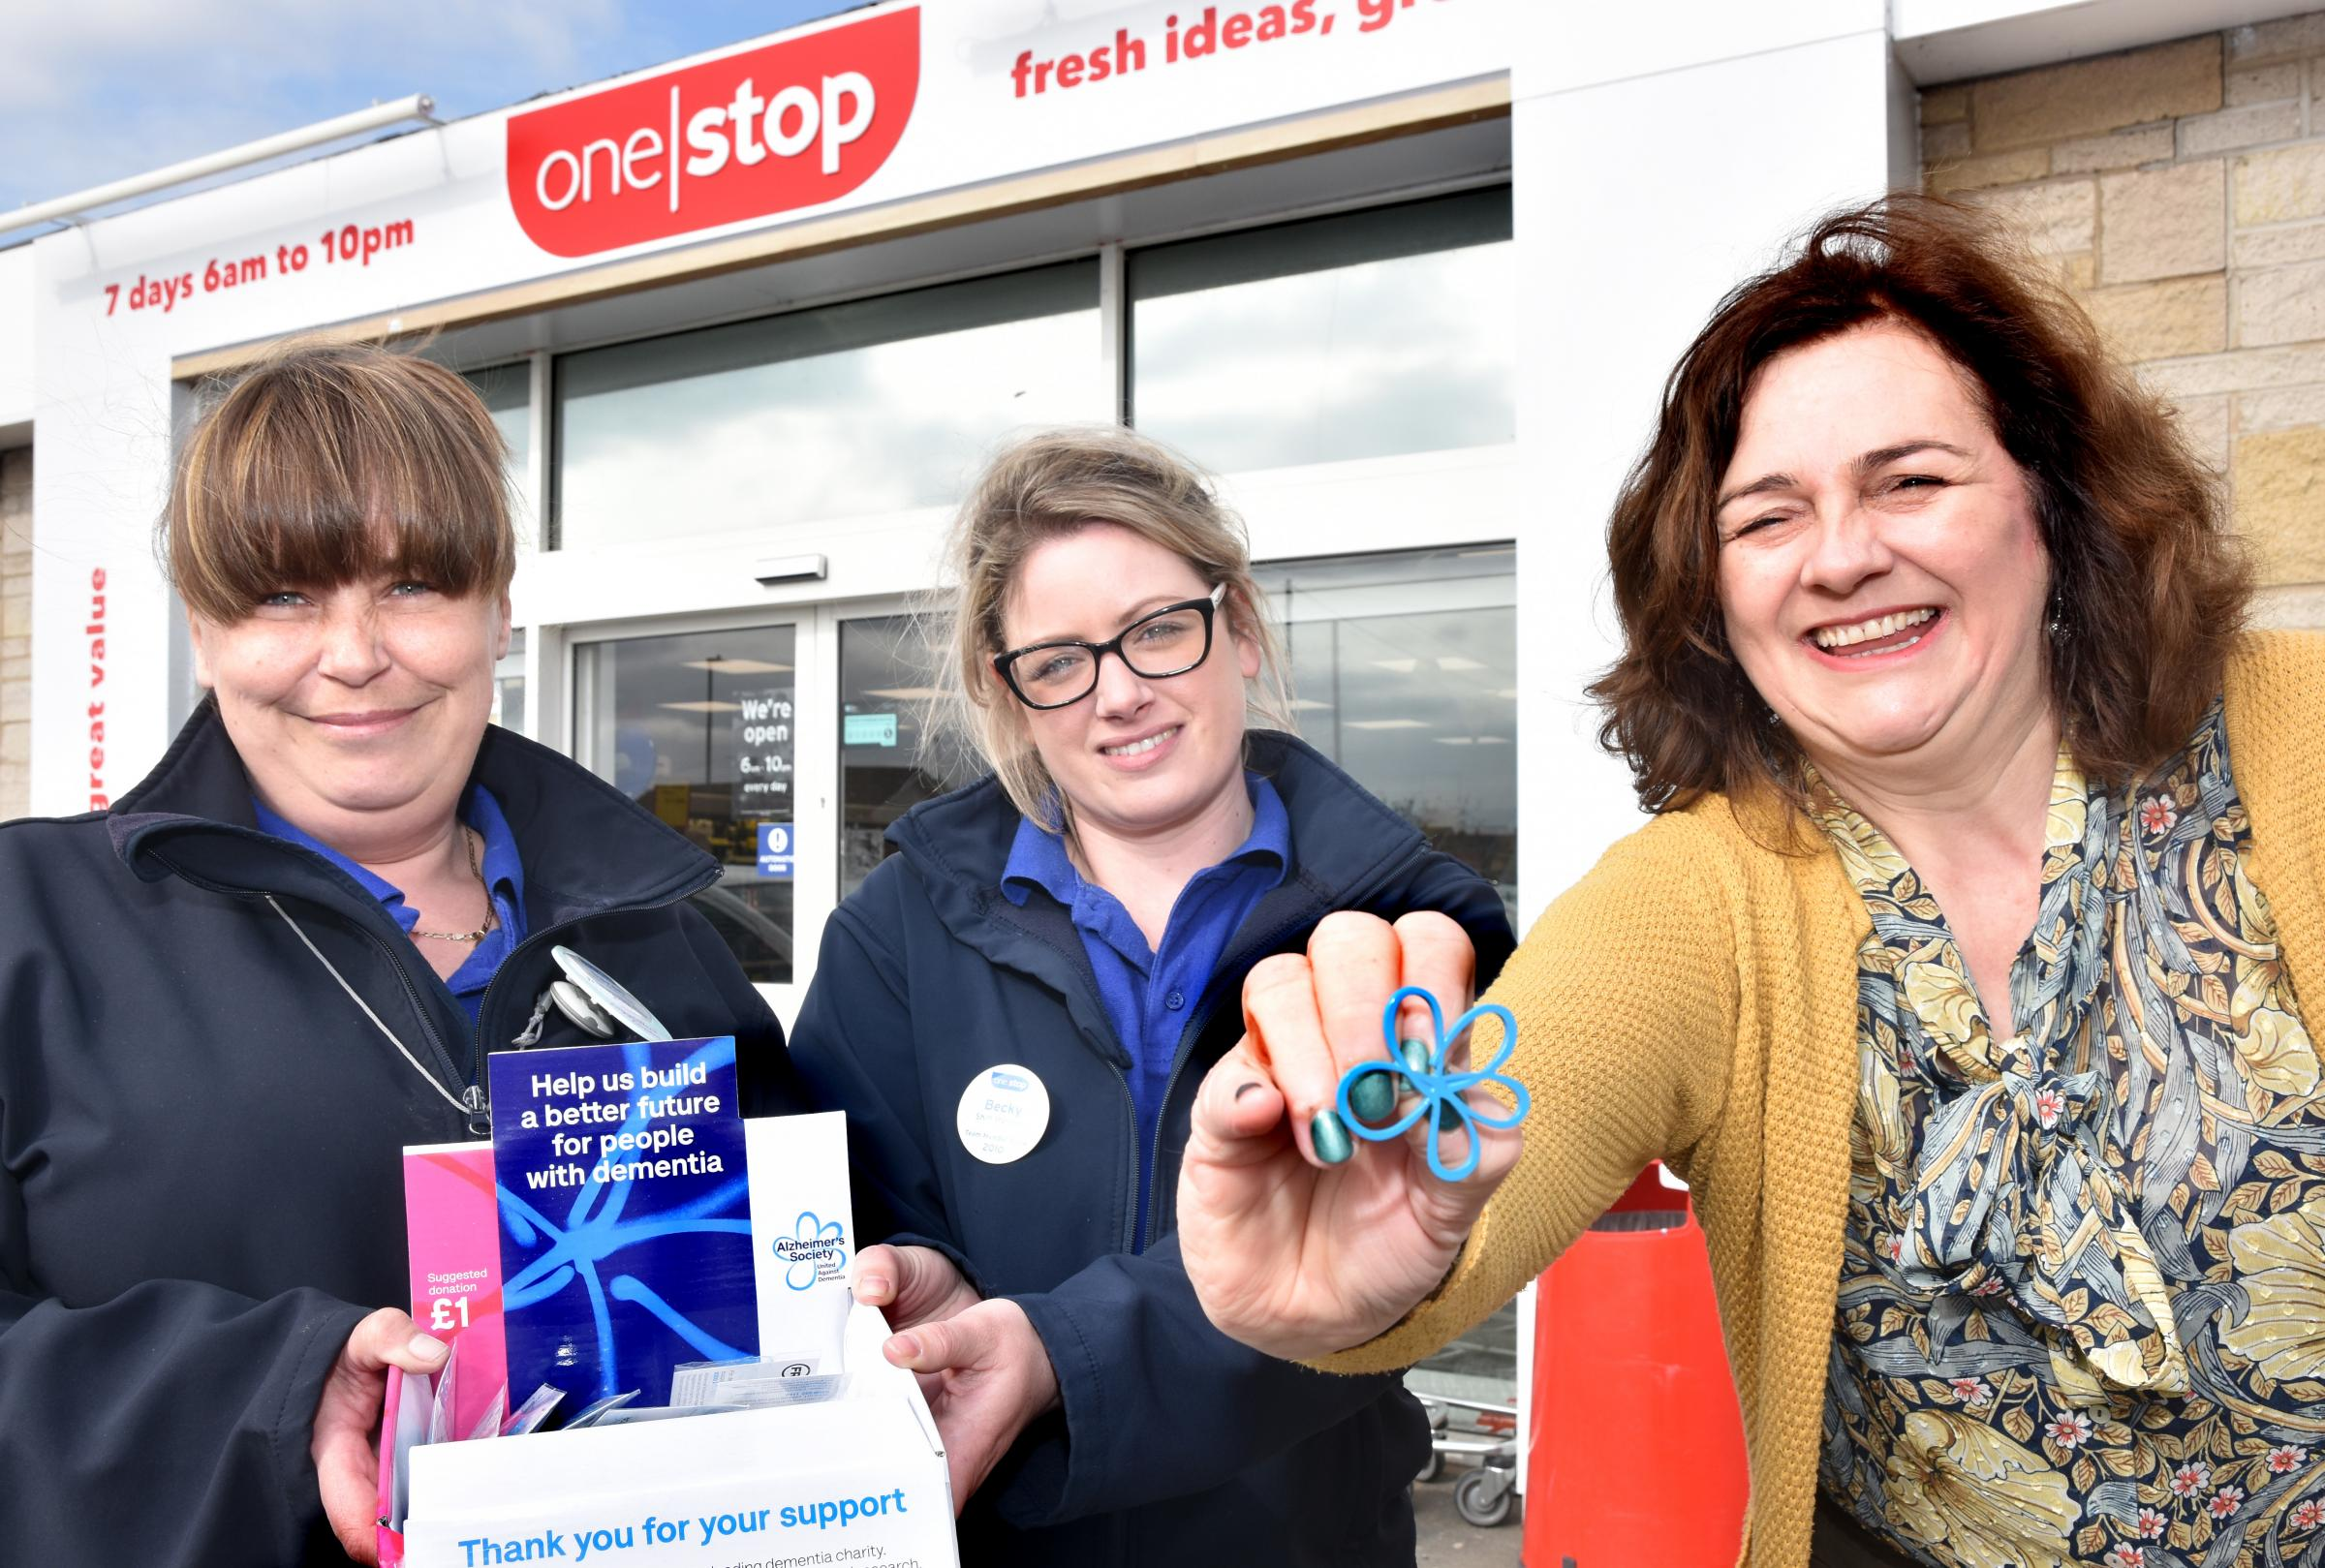 The One Stop in Norton has chosen the Alzheimer's Society as their new charity partner. Dinah Keal, right, media manager for Alzheimer's Society, with shop staff members Sarah Barlow and Becky Johnson    Picture: Frank Dwyer